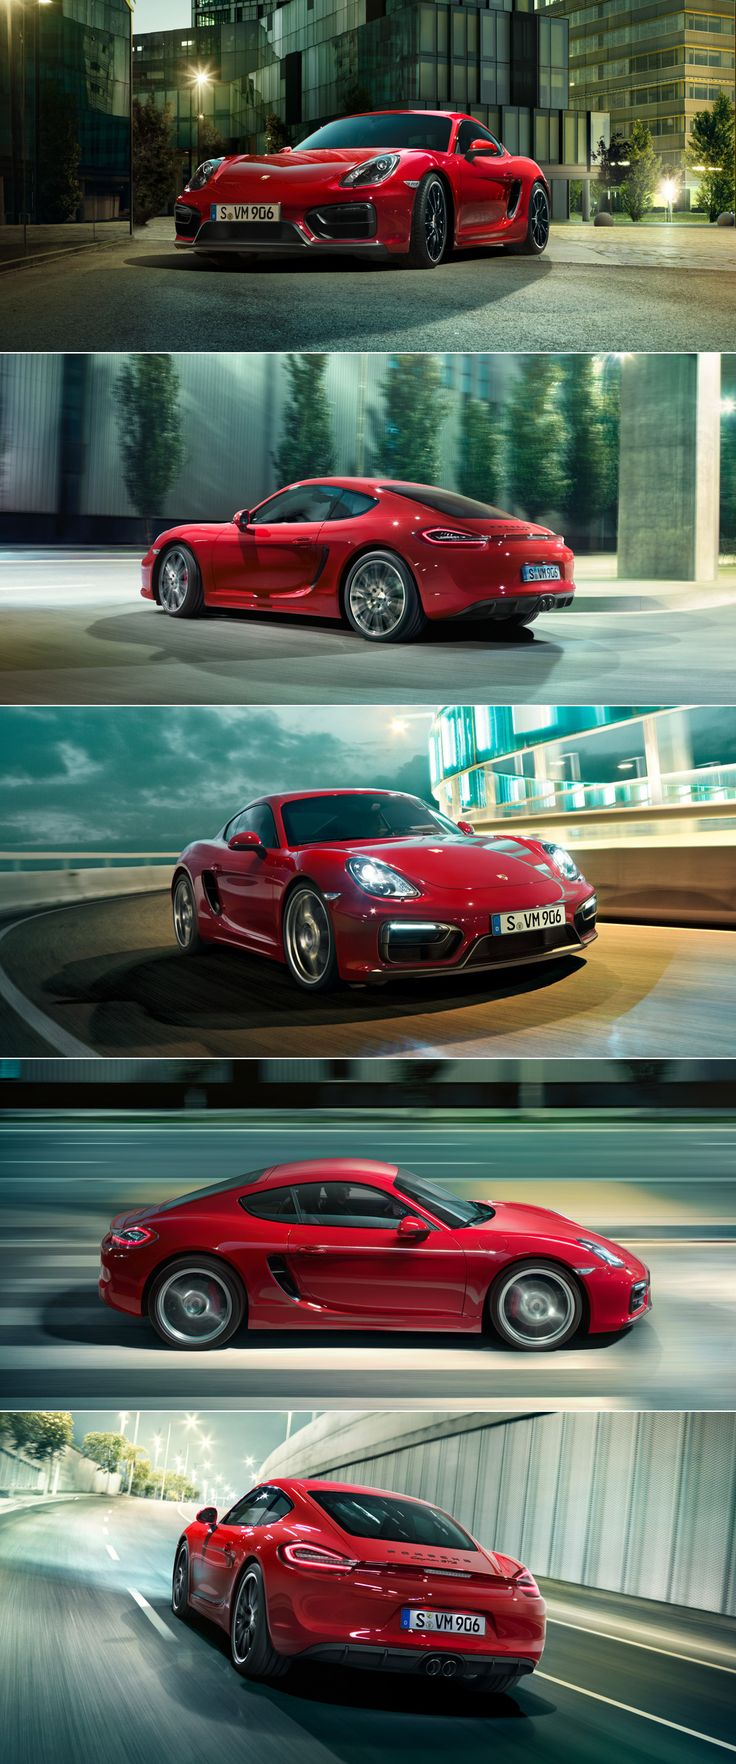 #Porsche #Cayman #GTS: It may have extra horsepower and more features, but it's still closer to what really matters: unadulterated driving pleasure, the endorphin rush in every corner and revolutionary adrenaline levels. So close to the origins of the sports car, with everything that it entails. The new Cayman¬ GTS.  Learn more: http://link.porsche.com/cayman-gts?pc=98114PINGA   Combined fuel consumption in accordance with EU 5 (Manual/PDK): 9.0/8.2 l/100 km, CO2 emissions 211/190 g/km.